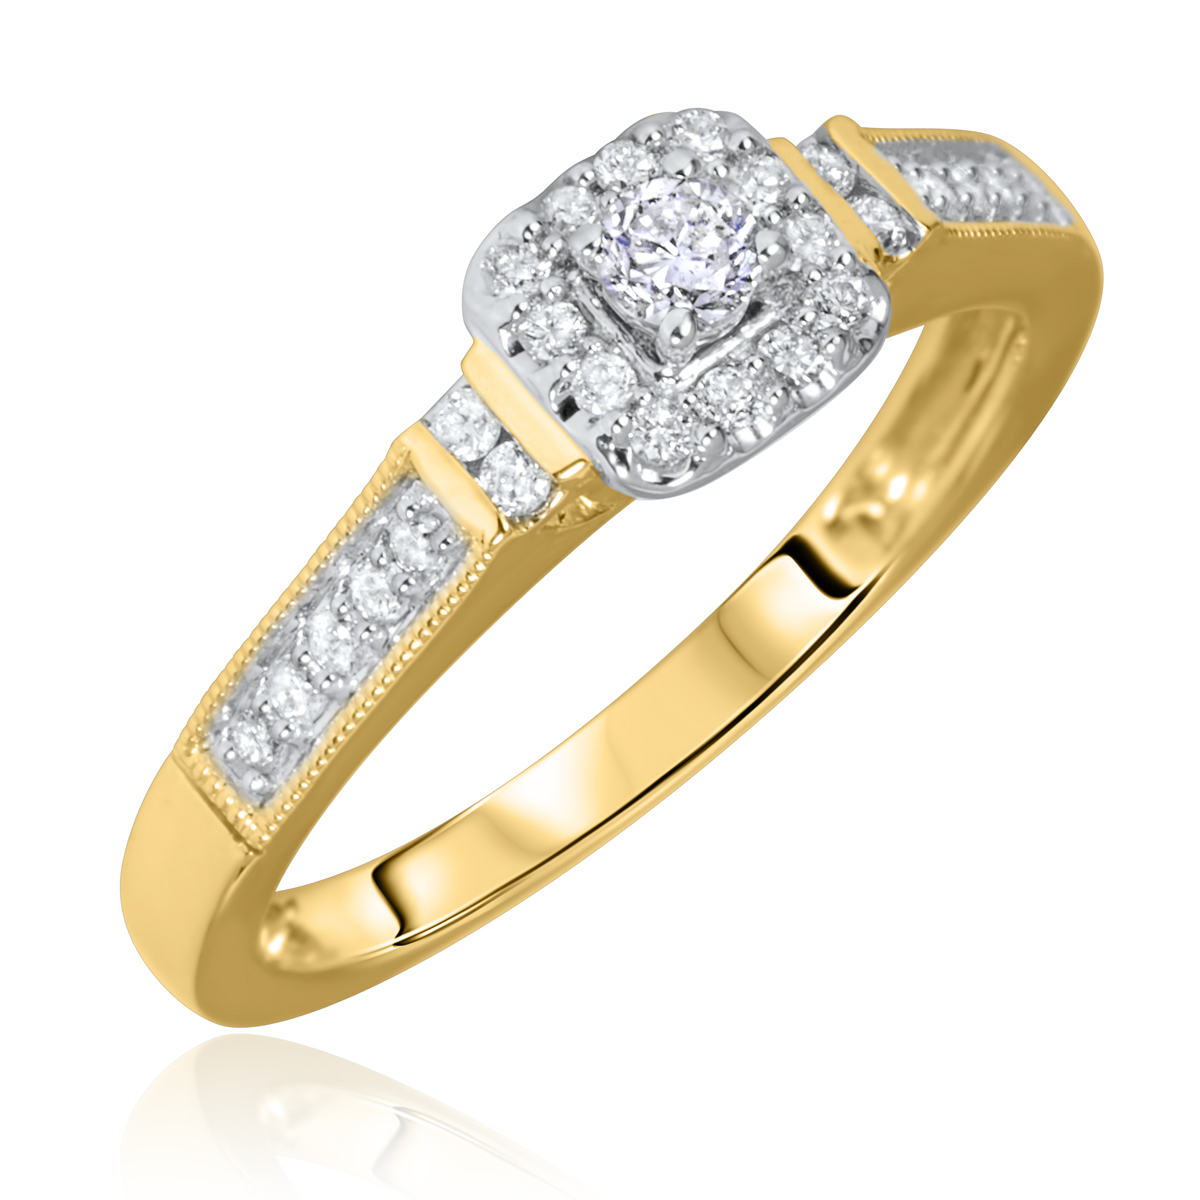 1/5 Carat T.W. Rounds Cut Diamond Ladies Engagement Ring 14K Yellow Gold- Size 8